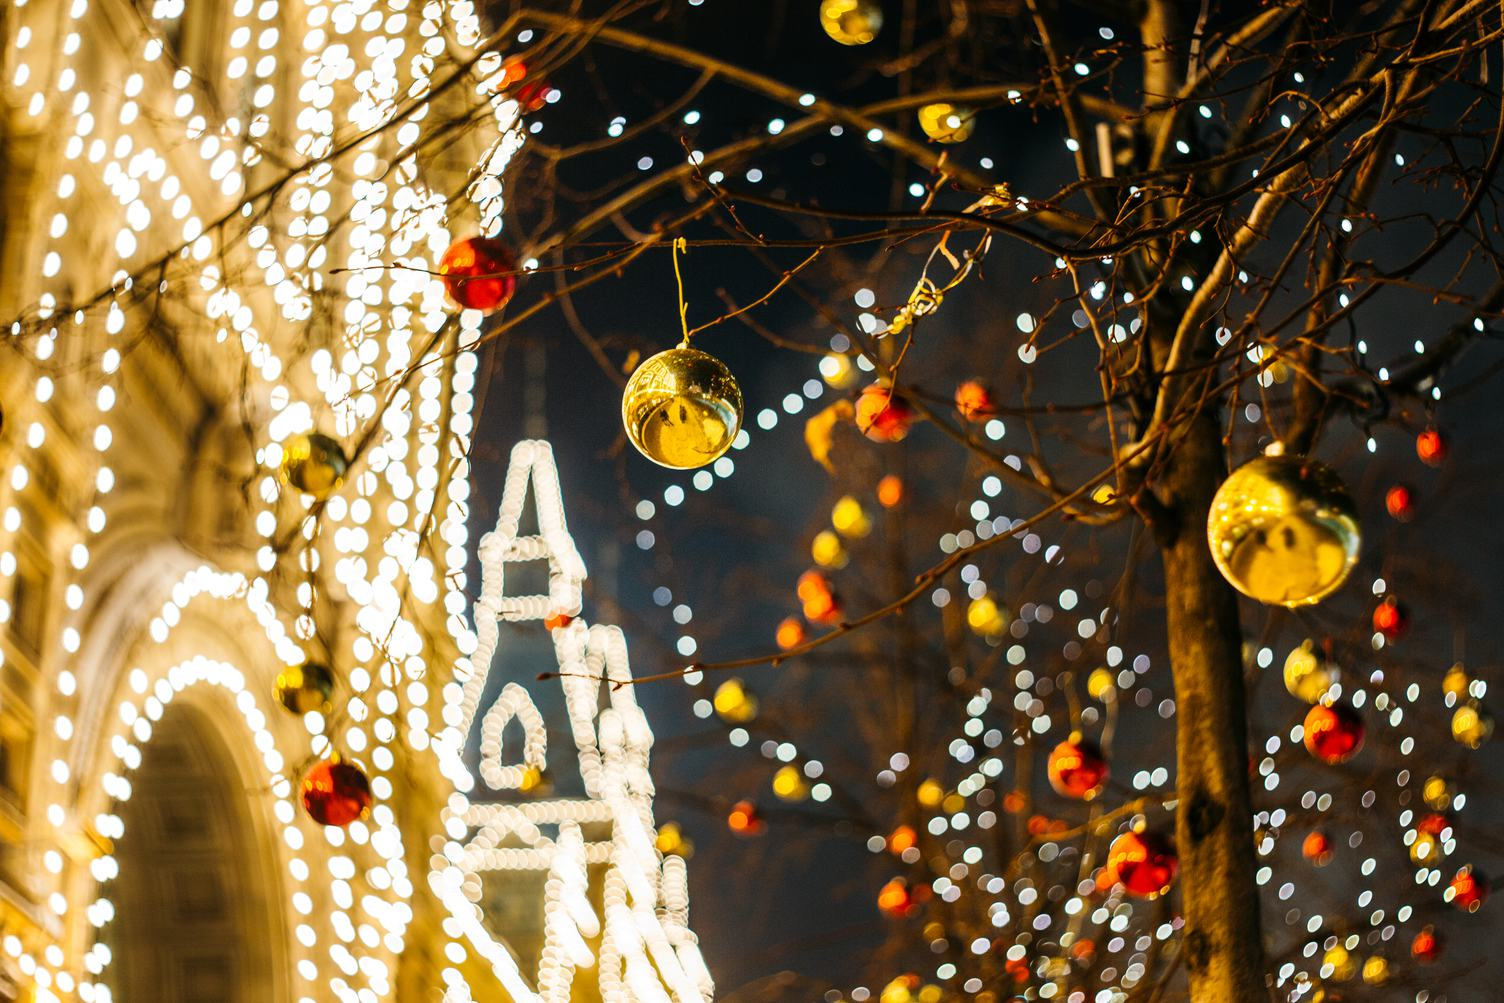 Christmas Decorations in the City at Night